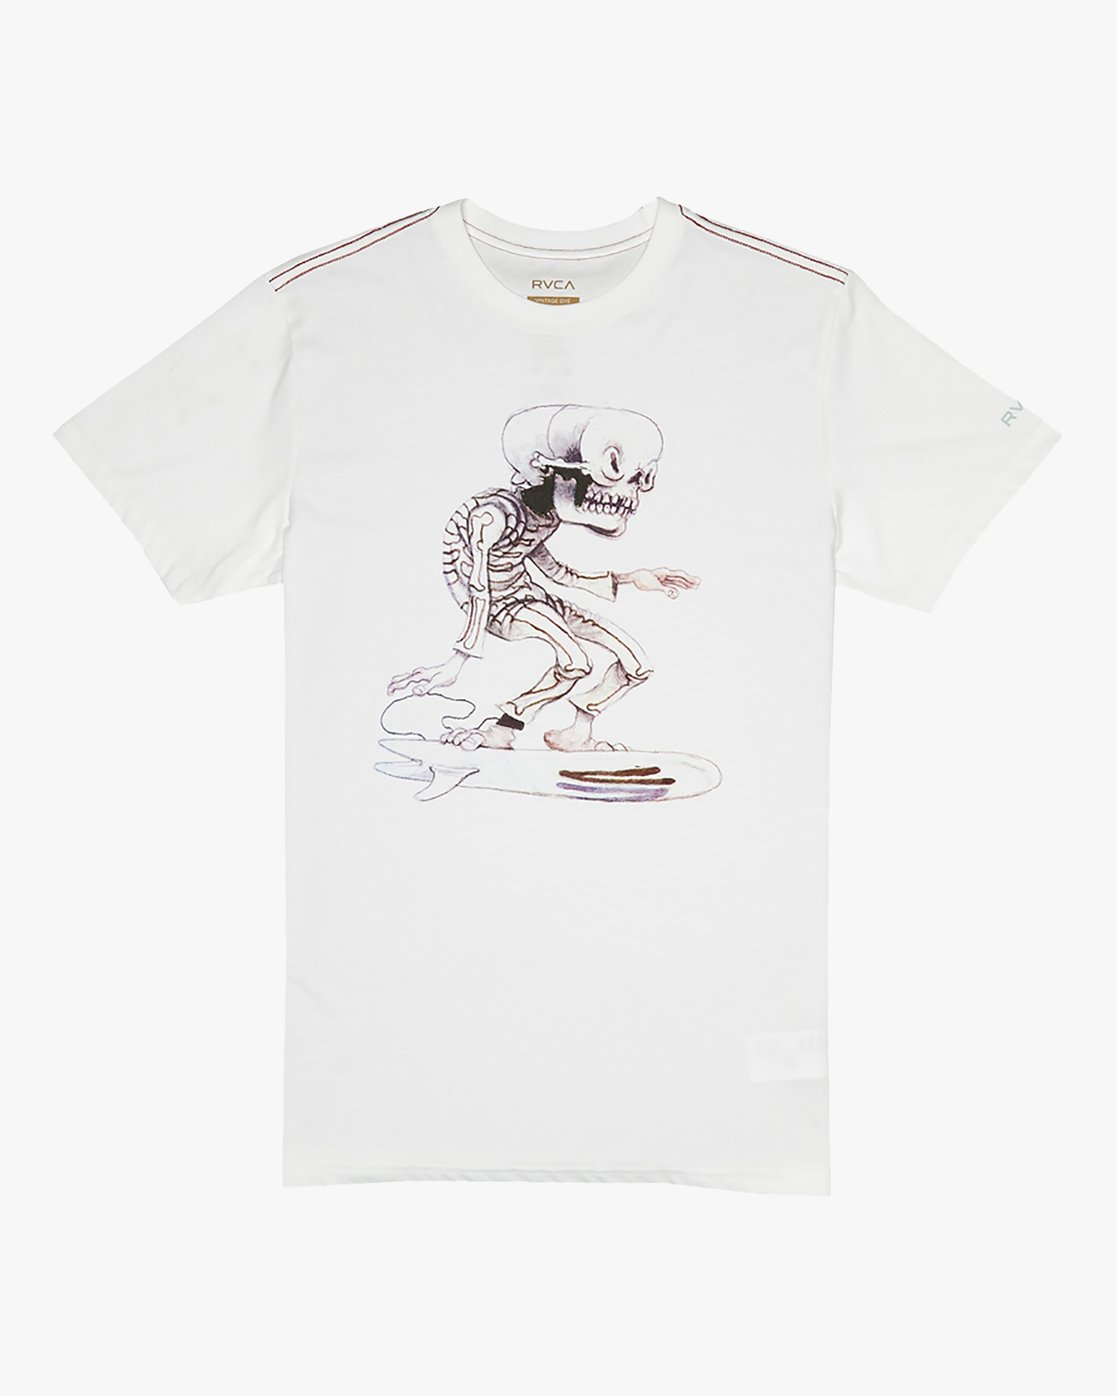 0 Jeff McMillan Skull Surfer - T-Shirt for T-Shirt White S1SSRJRVP0 RVCA